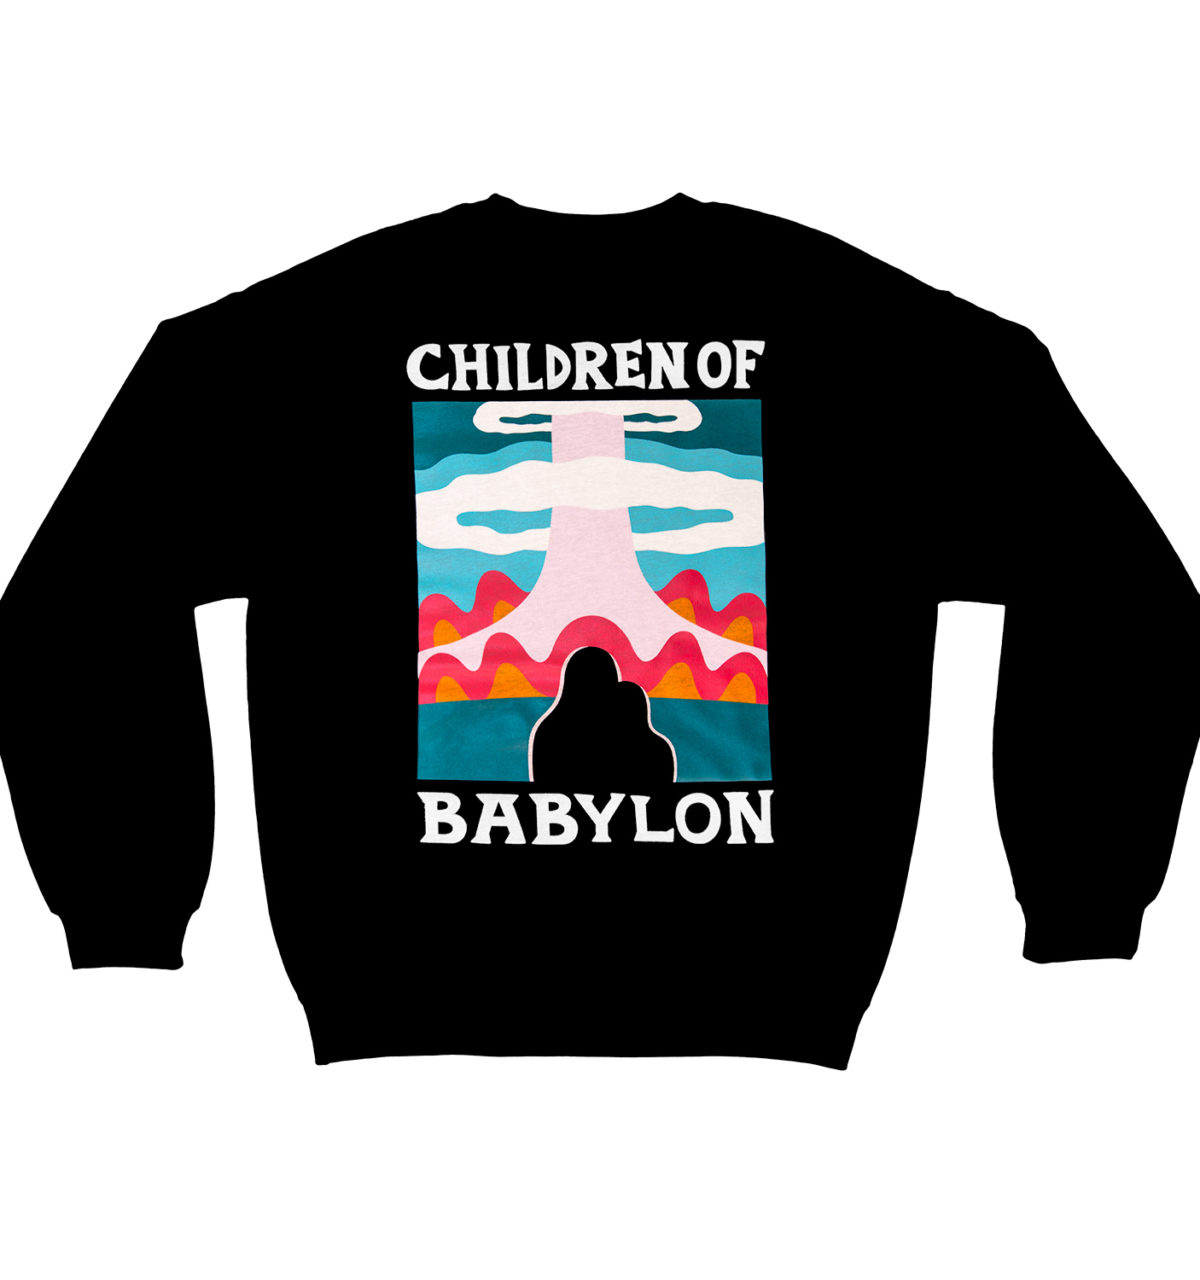 Black sweatshirt with colorful artwork printed on the back and illustration embroidery on the front